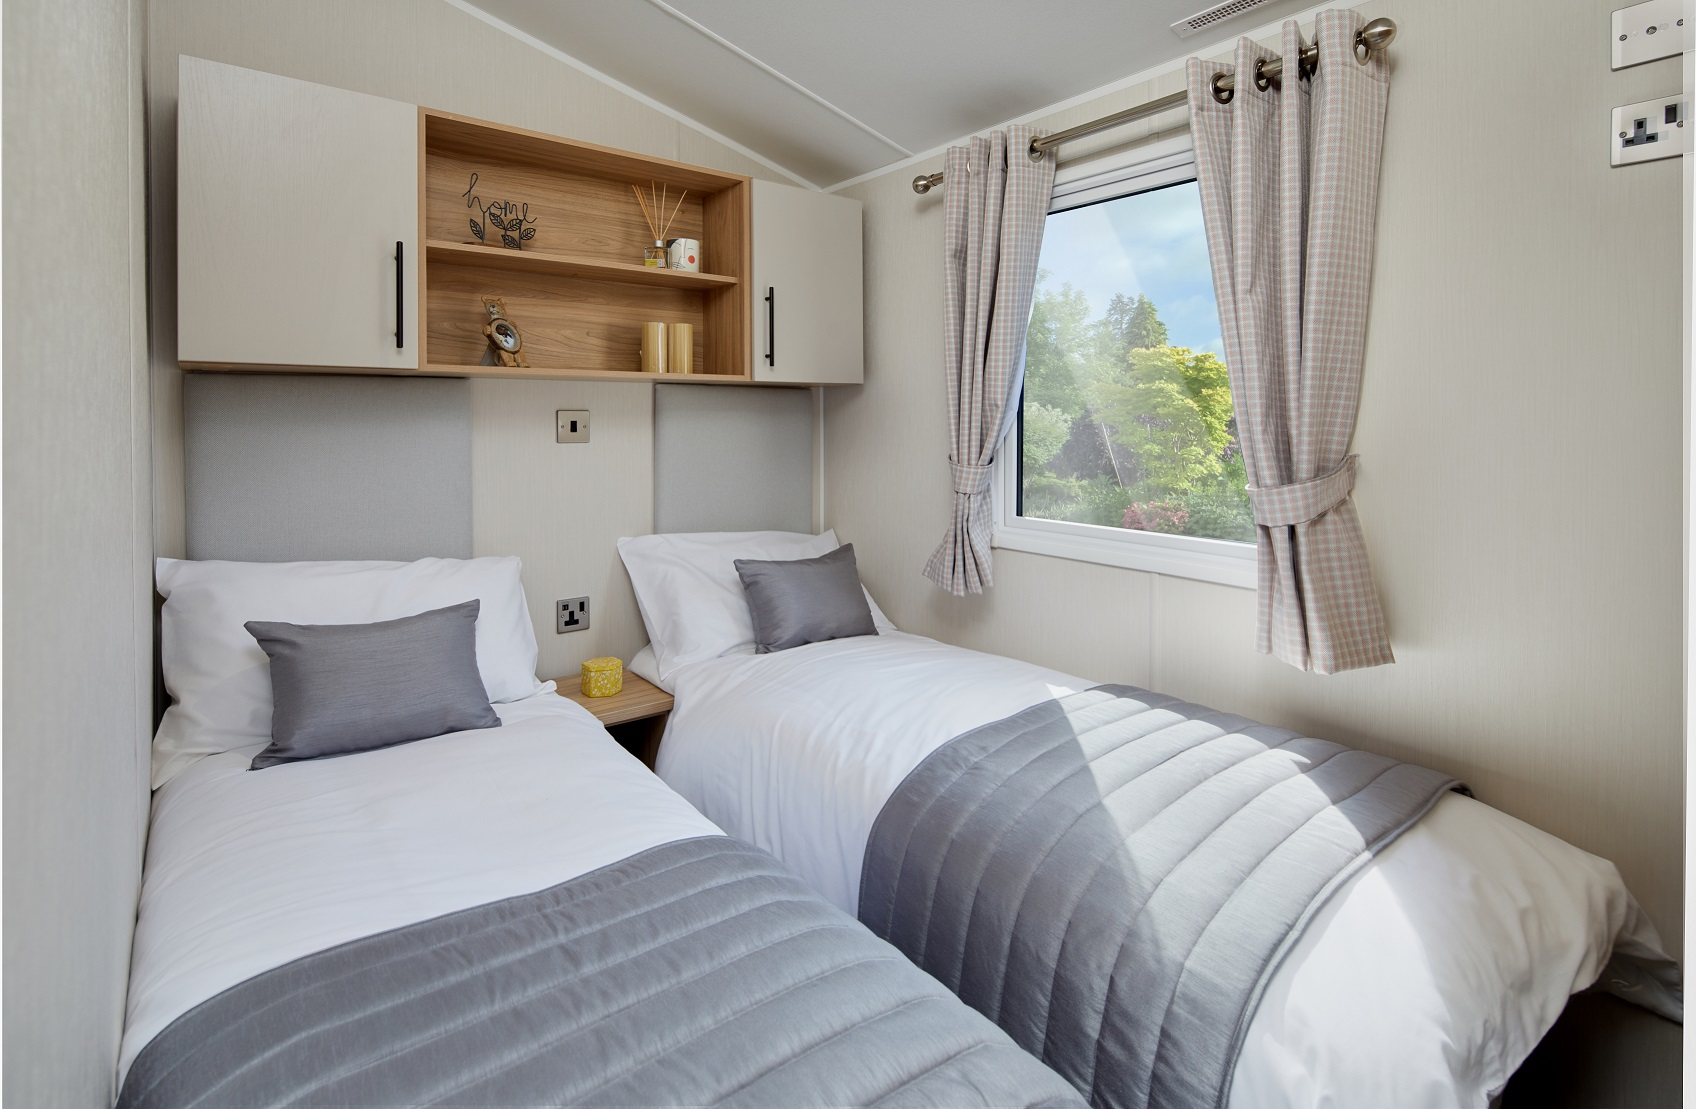 Willerby Manor: New Static Caravans and Holiday Homes for Sale, On Order Image 3